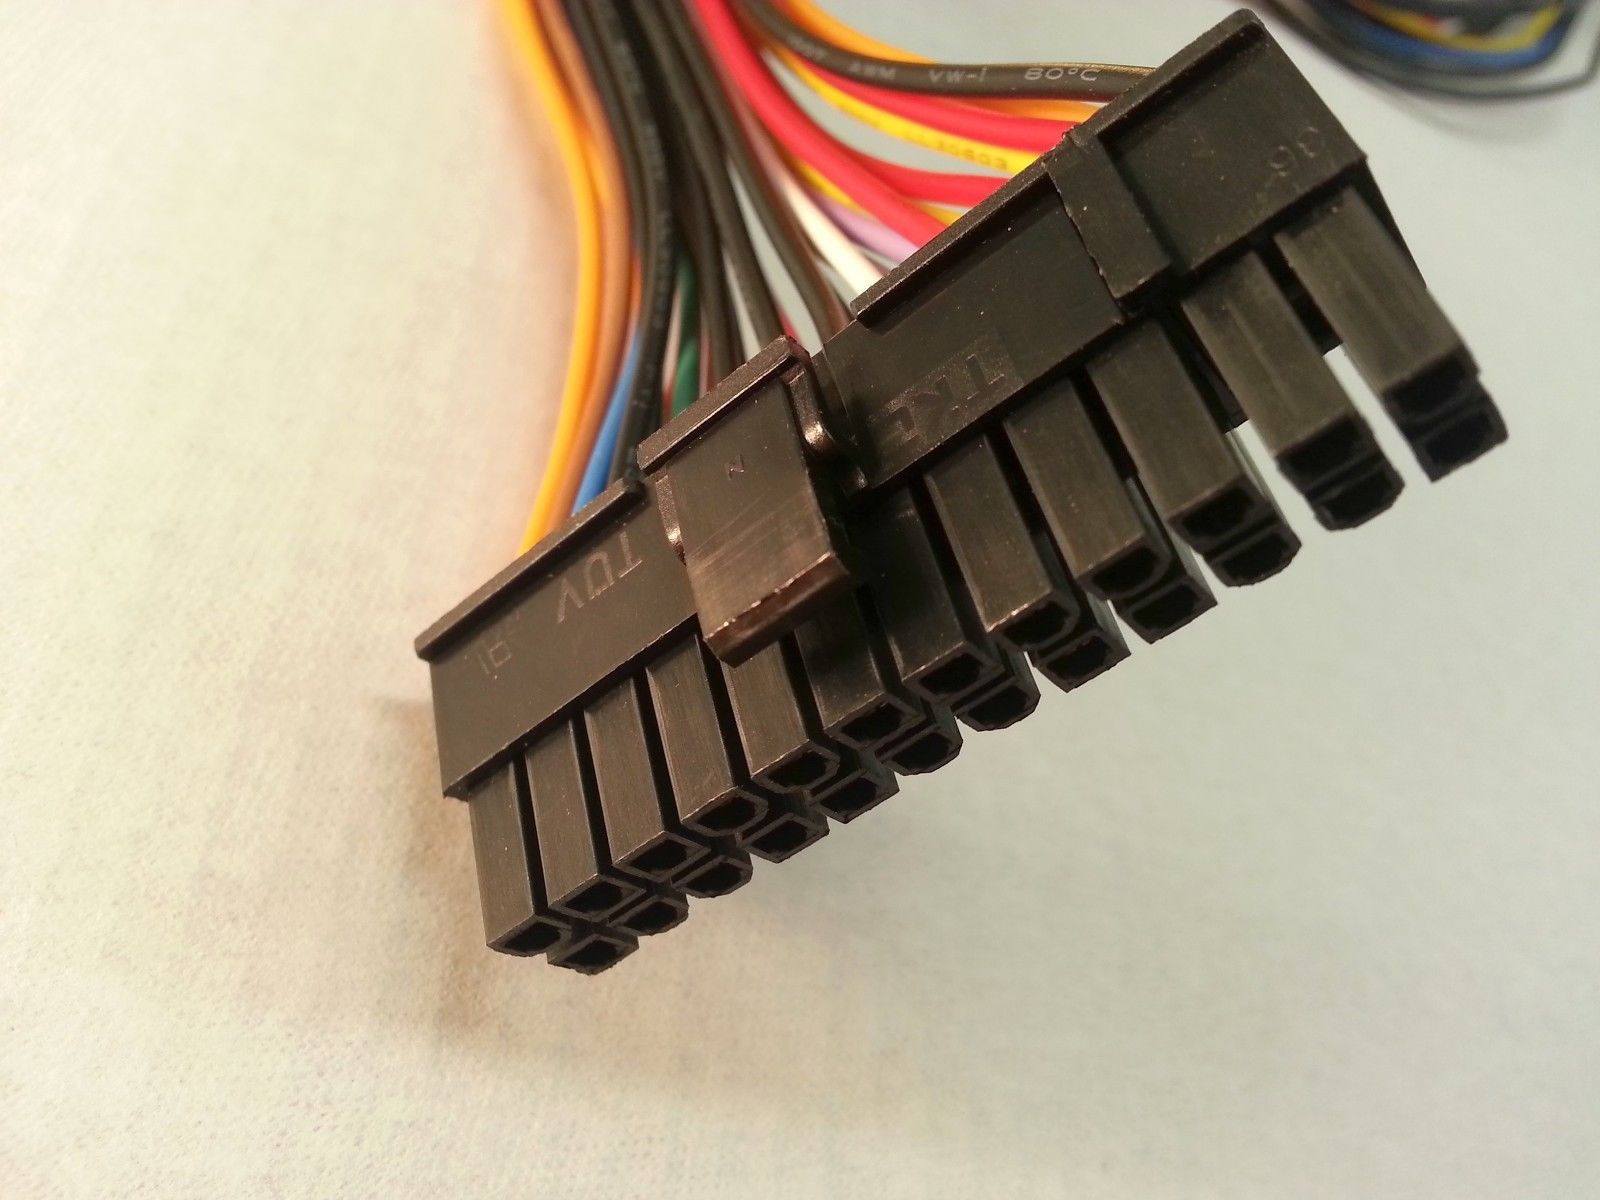 New PC Power Supply Upgrade for HP Pavilion and 50 similar items